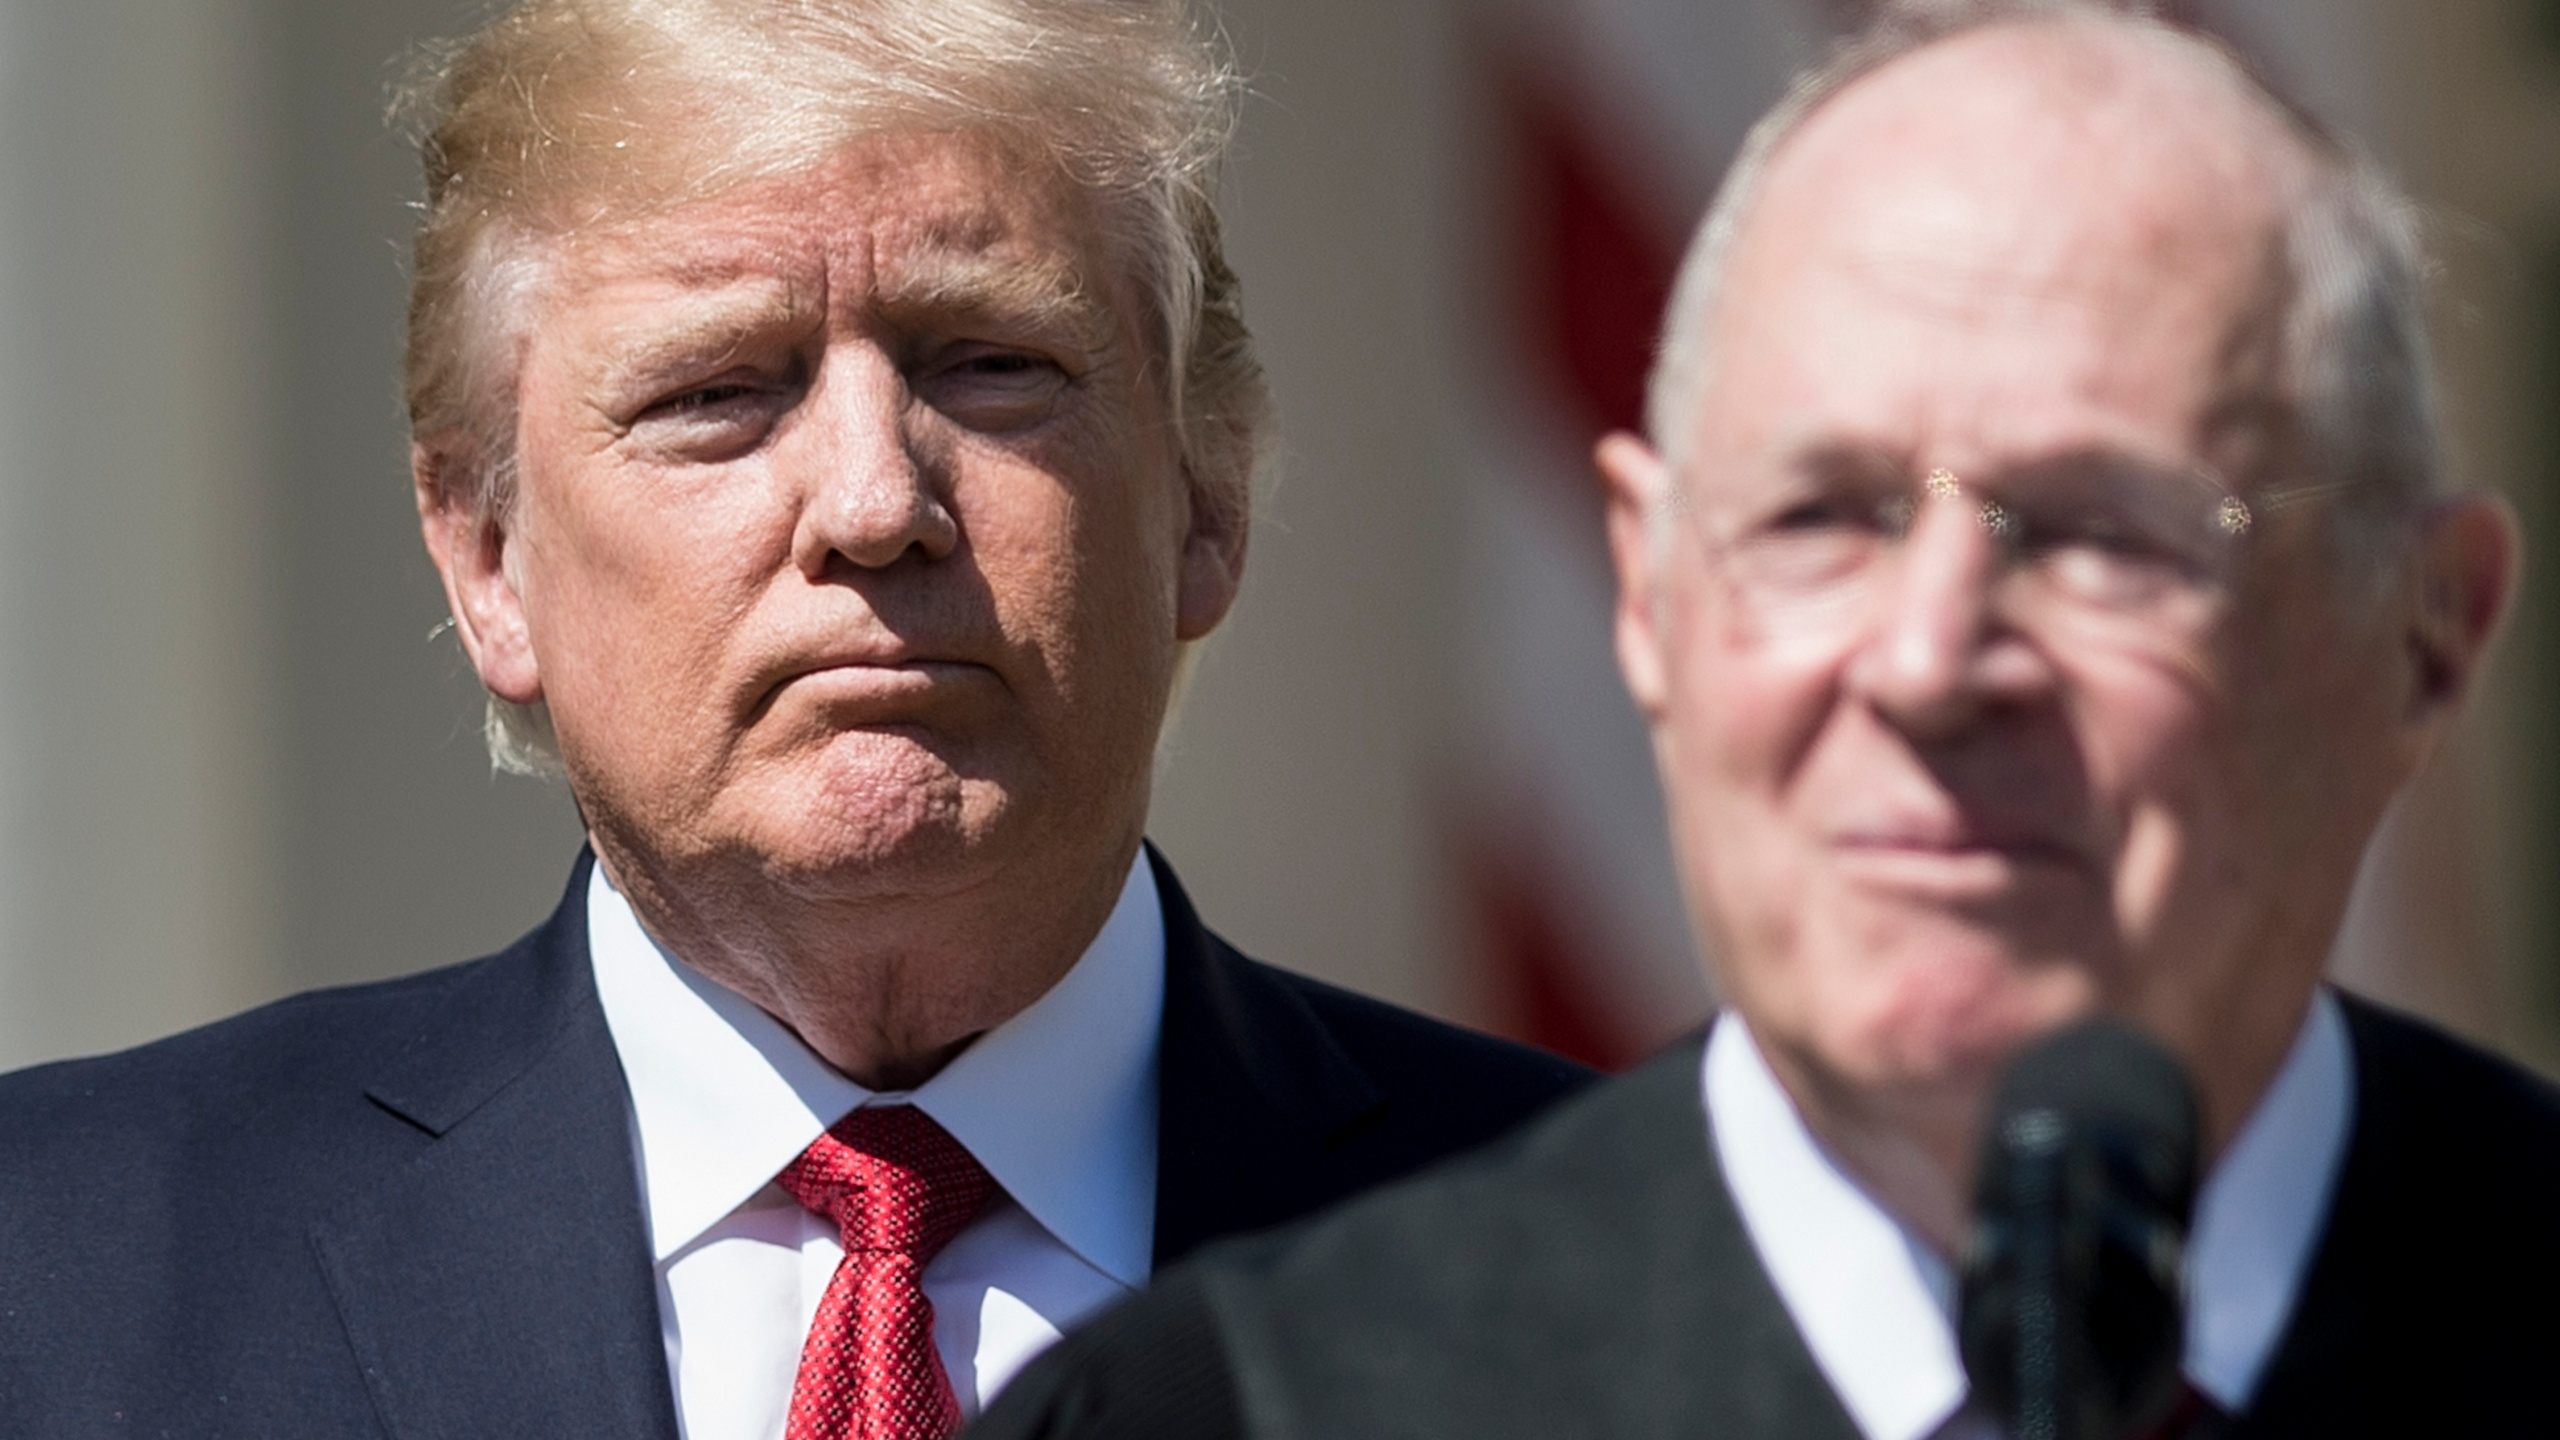 Donald Trump listens while Supreme Court Justice Anthony Kennedy speaks during a ceremony in the Rose Garden of the White House April 10, 2017 in Washington, D.C. (Credit: BRENDAN SMIALOWSKI/AFP/Getty Images)